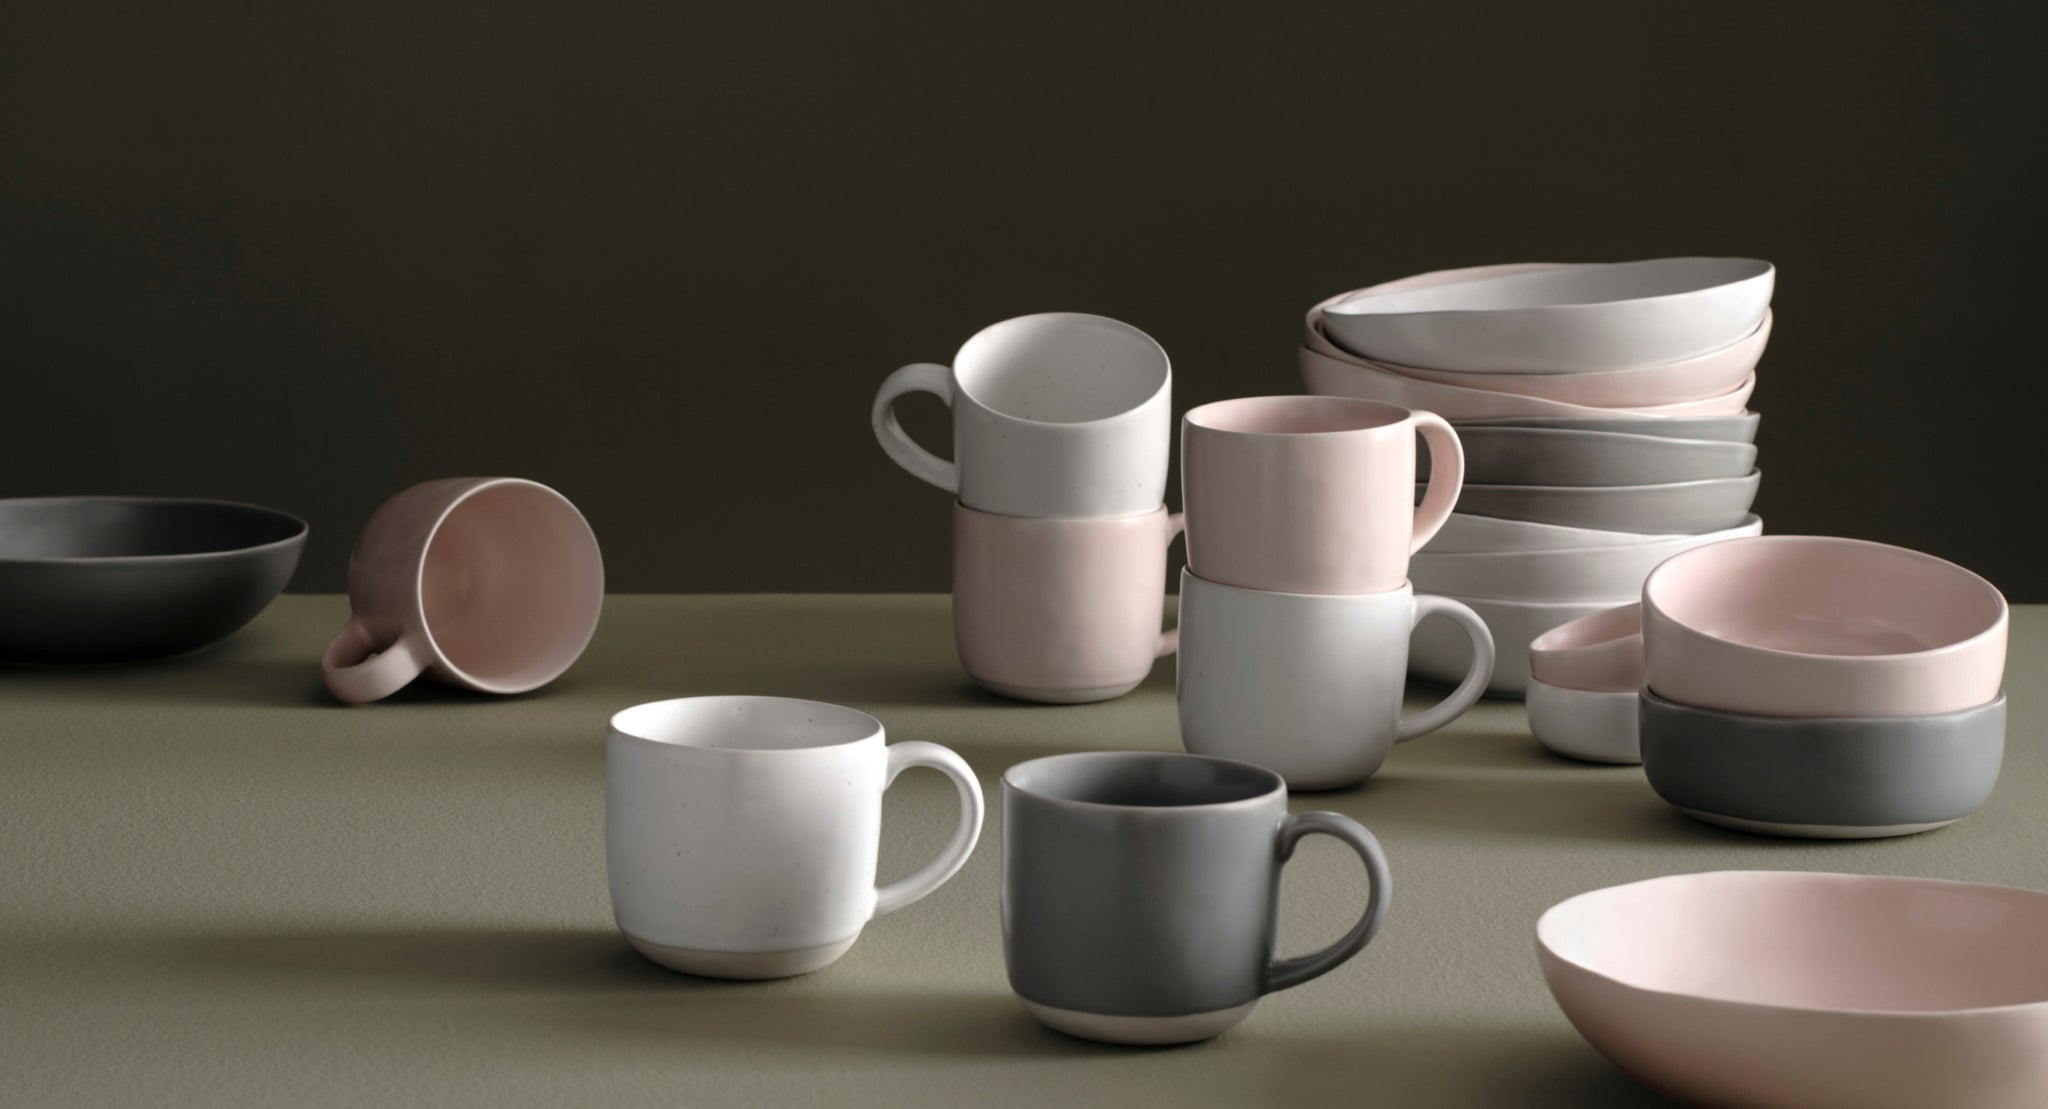 Mix & Match ceramics